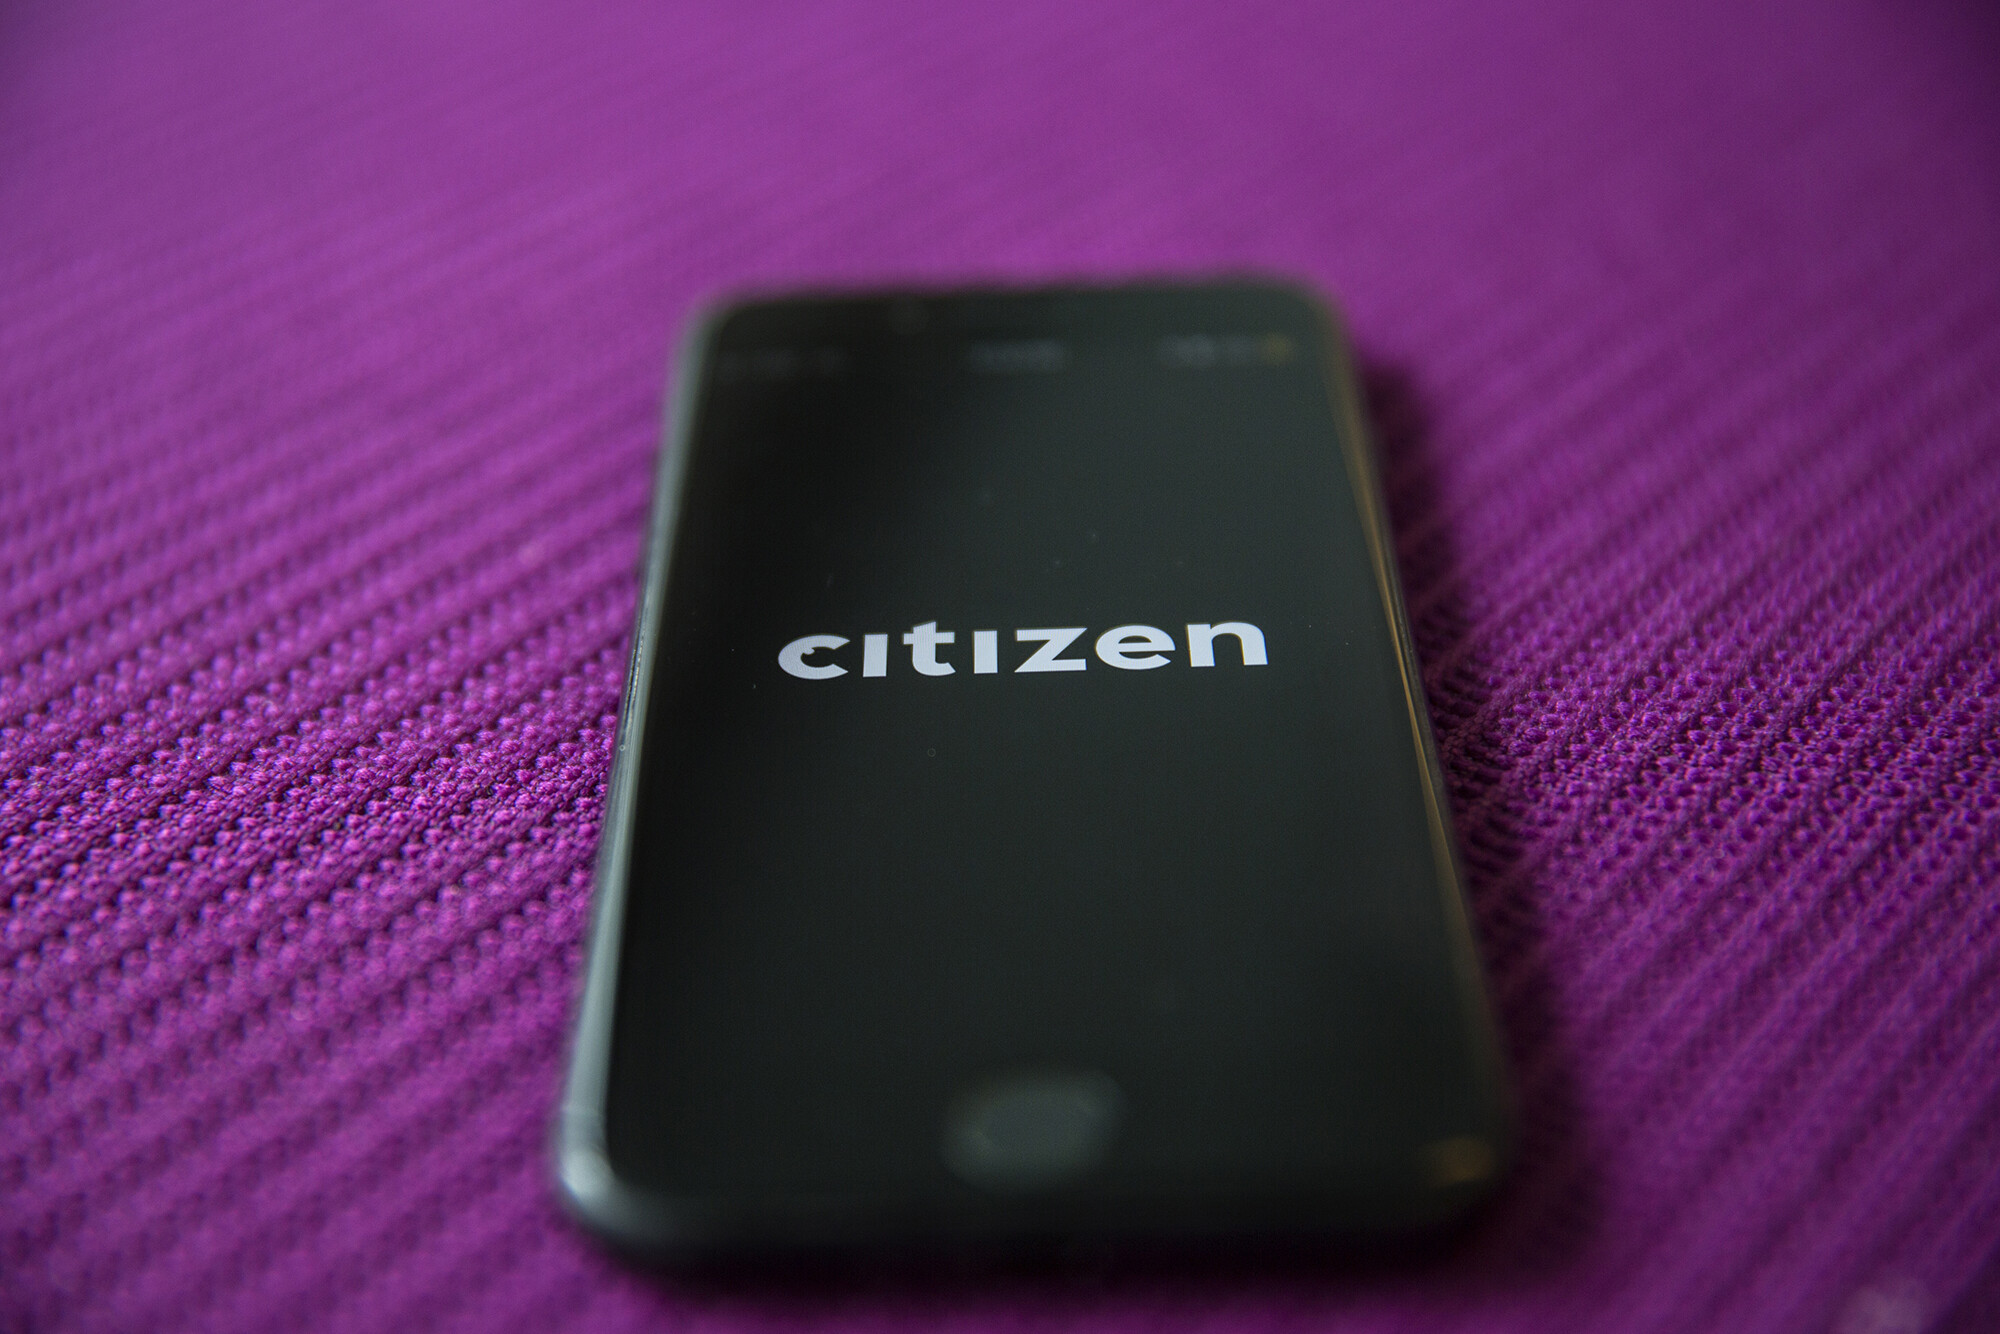 <i>Victor J. Blue/Bloomberg/Getty Images</i><br/>Citizen launched Tuesday a paid private security product called Protect.